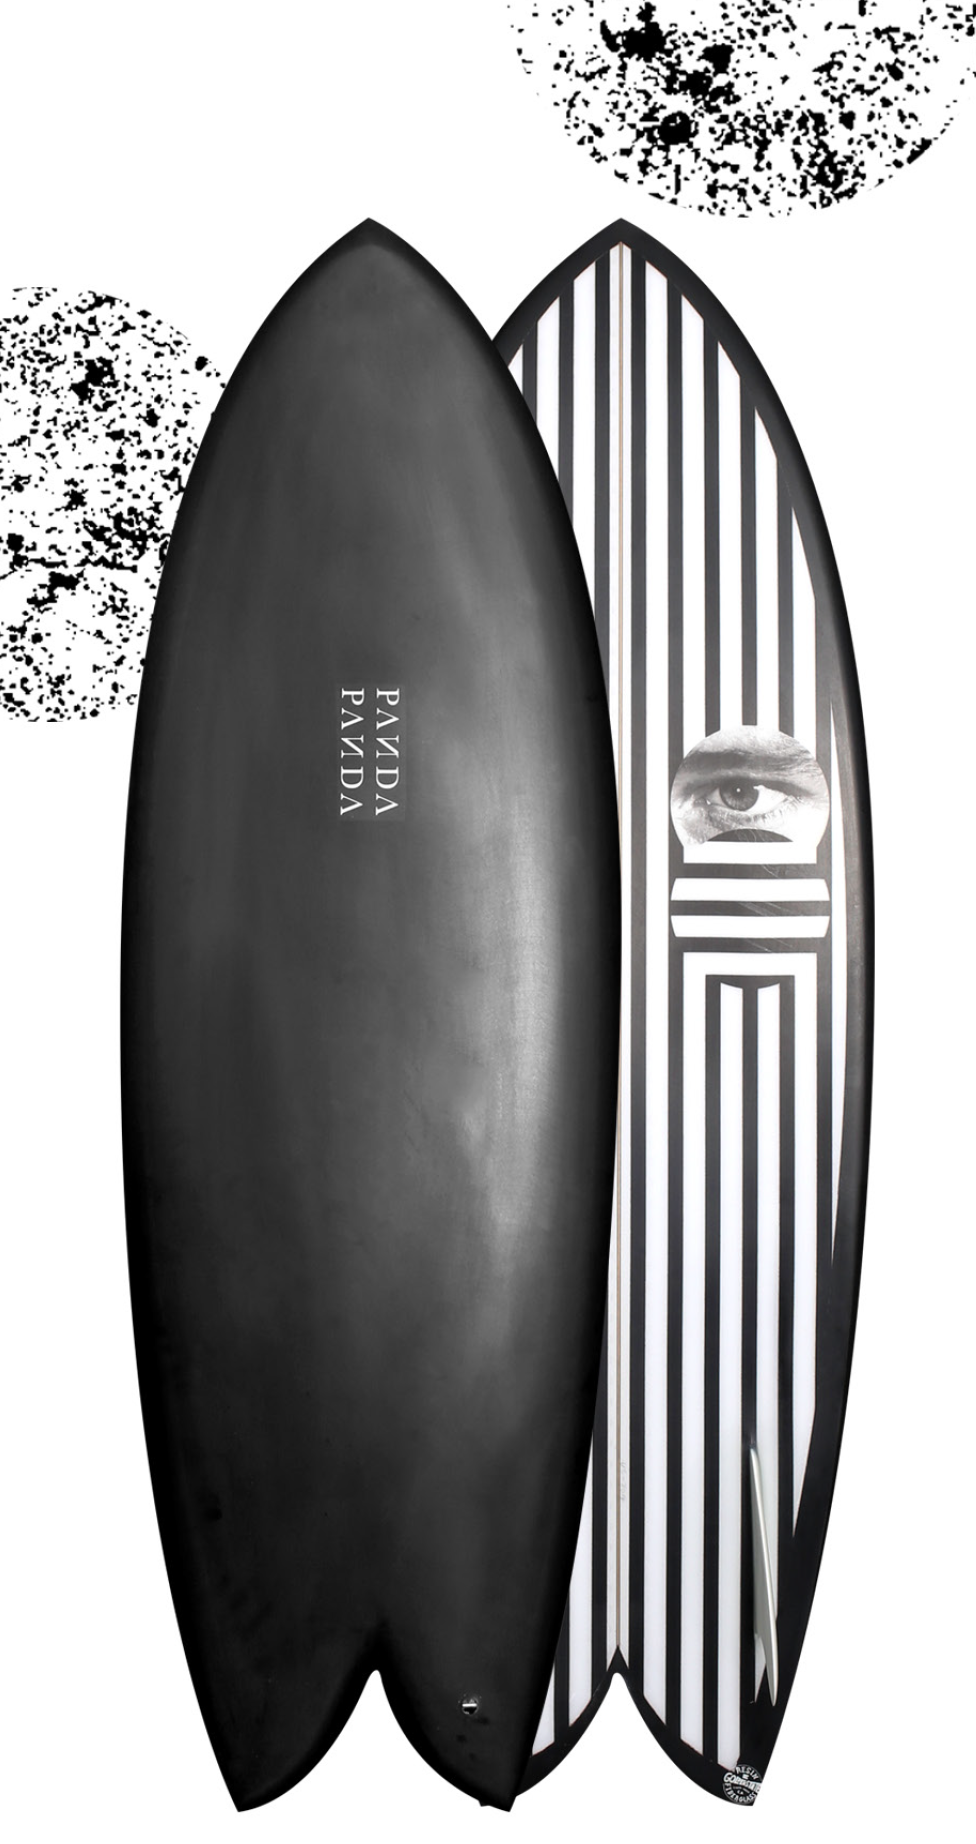 ASTRO ZOMBIE     Our twin keel fish has been tweaked and refined taking this guy to a whole other level. We have given this guy a new outline making it sleeker, refined the rails for control and changed the bottom. The bottom now consists of a rolled vee entry to single to deep double concave. The main new feature is the channels running outside the fins using the twinzer concept which has given this board a whole new gear. Its fast.